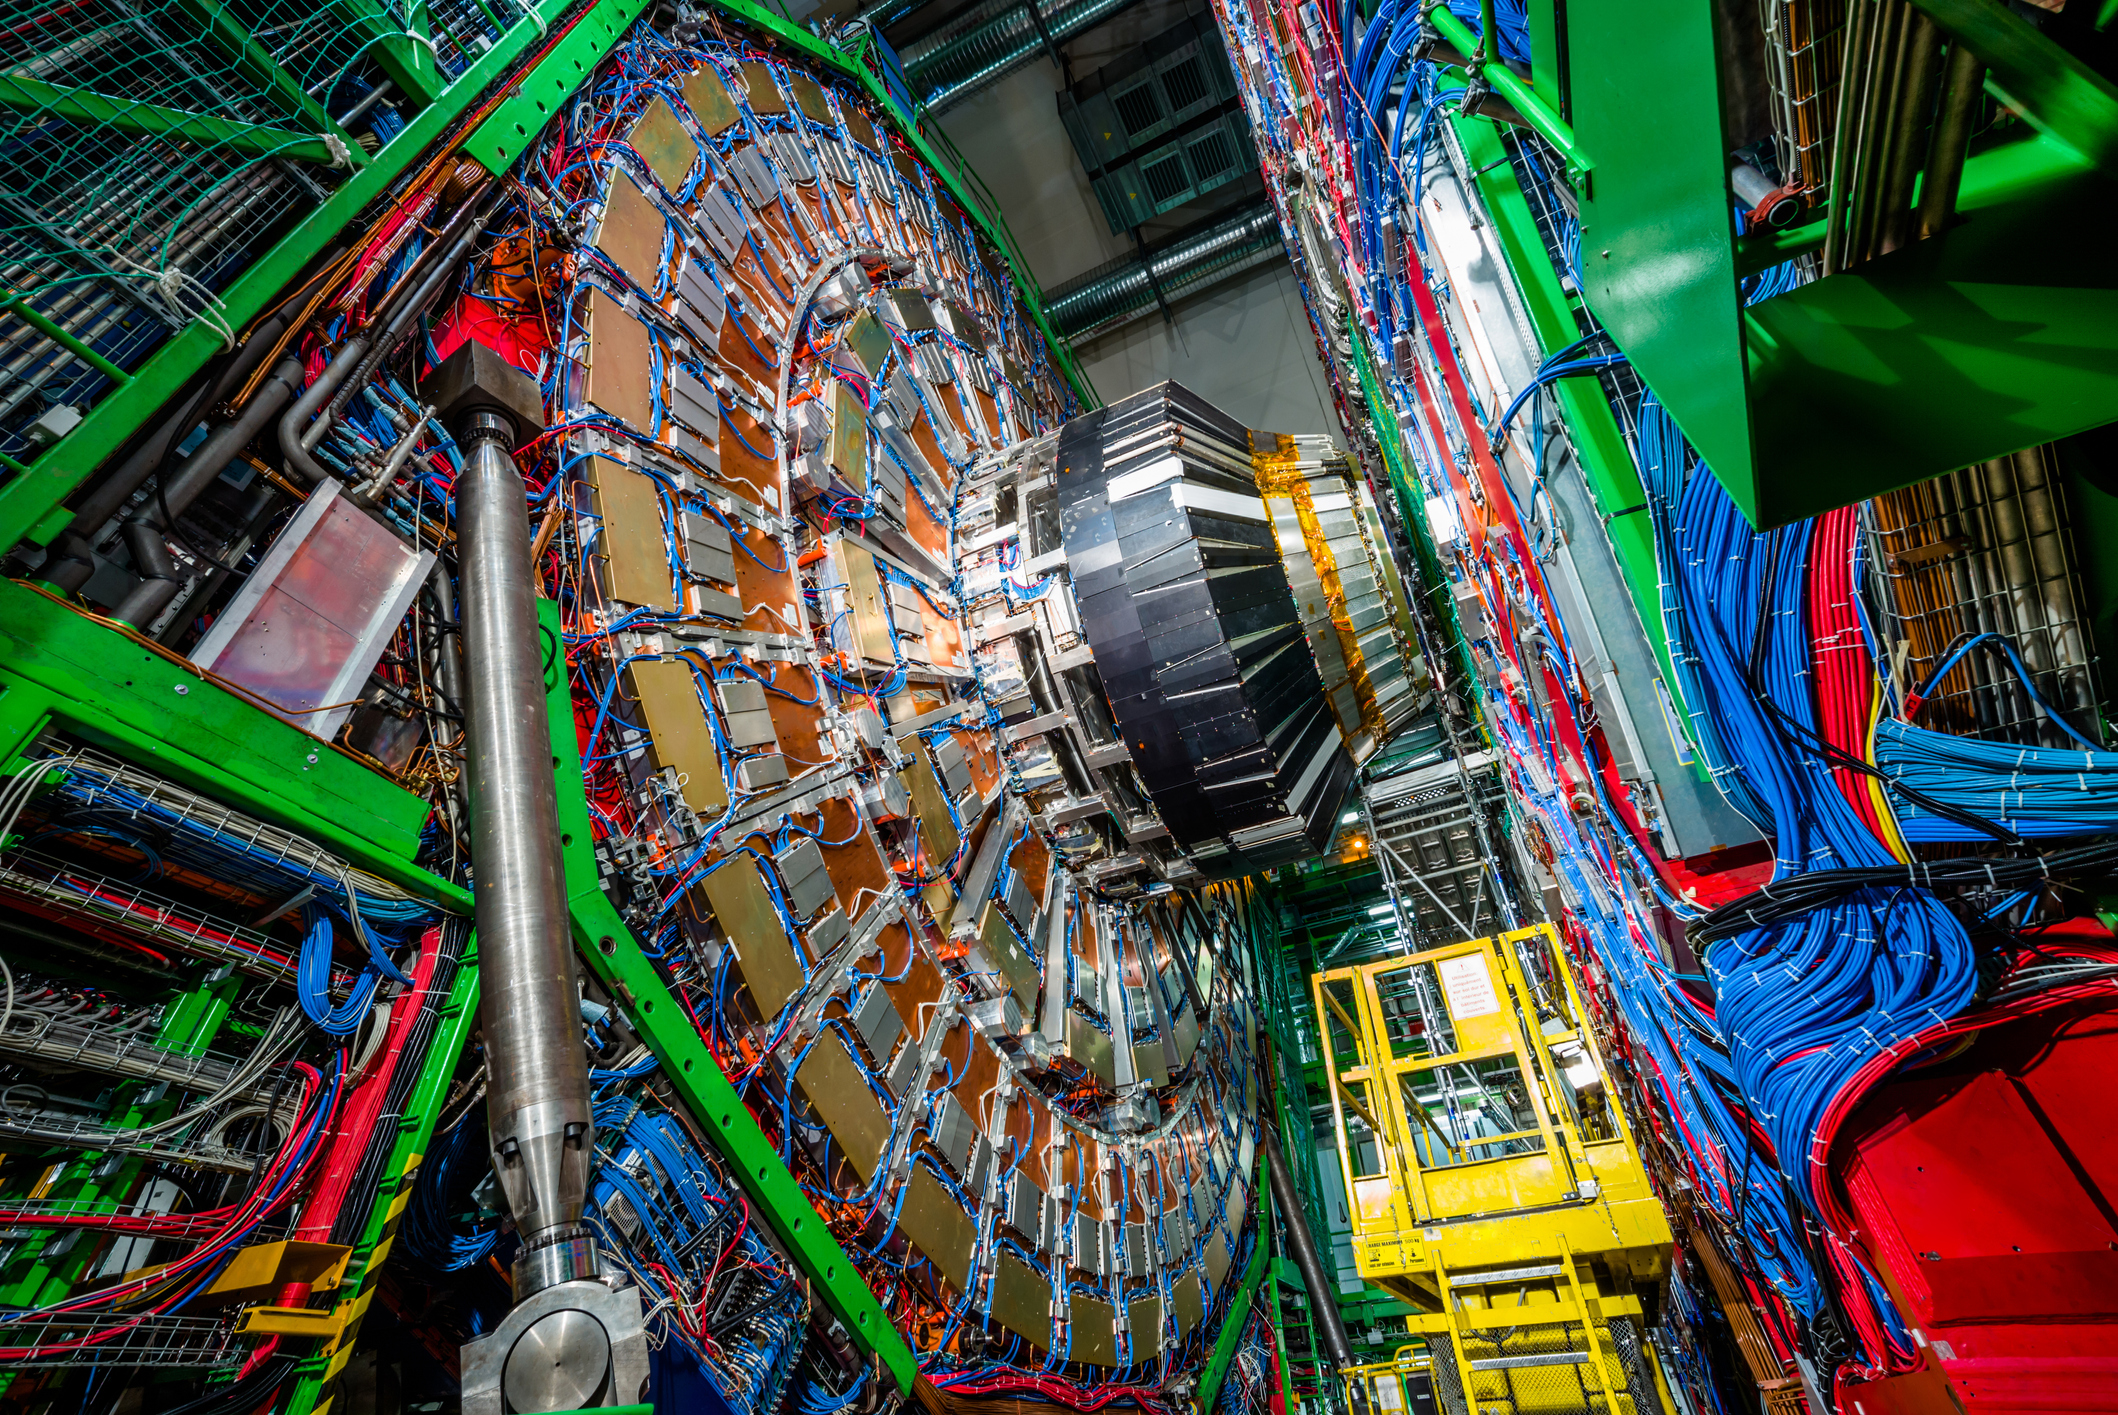 Muons Wobble But They Don't Fall Down